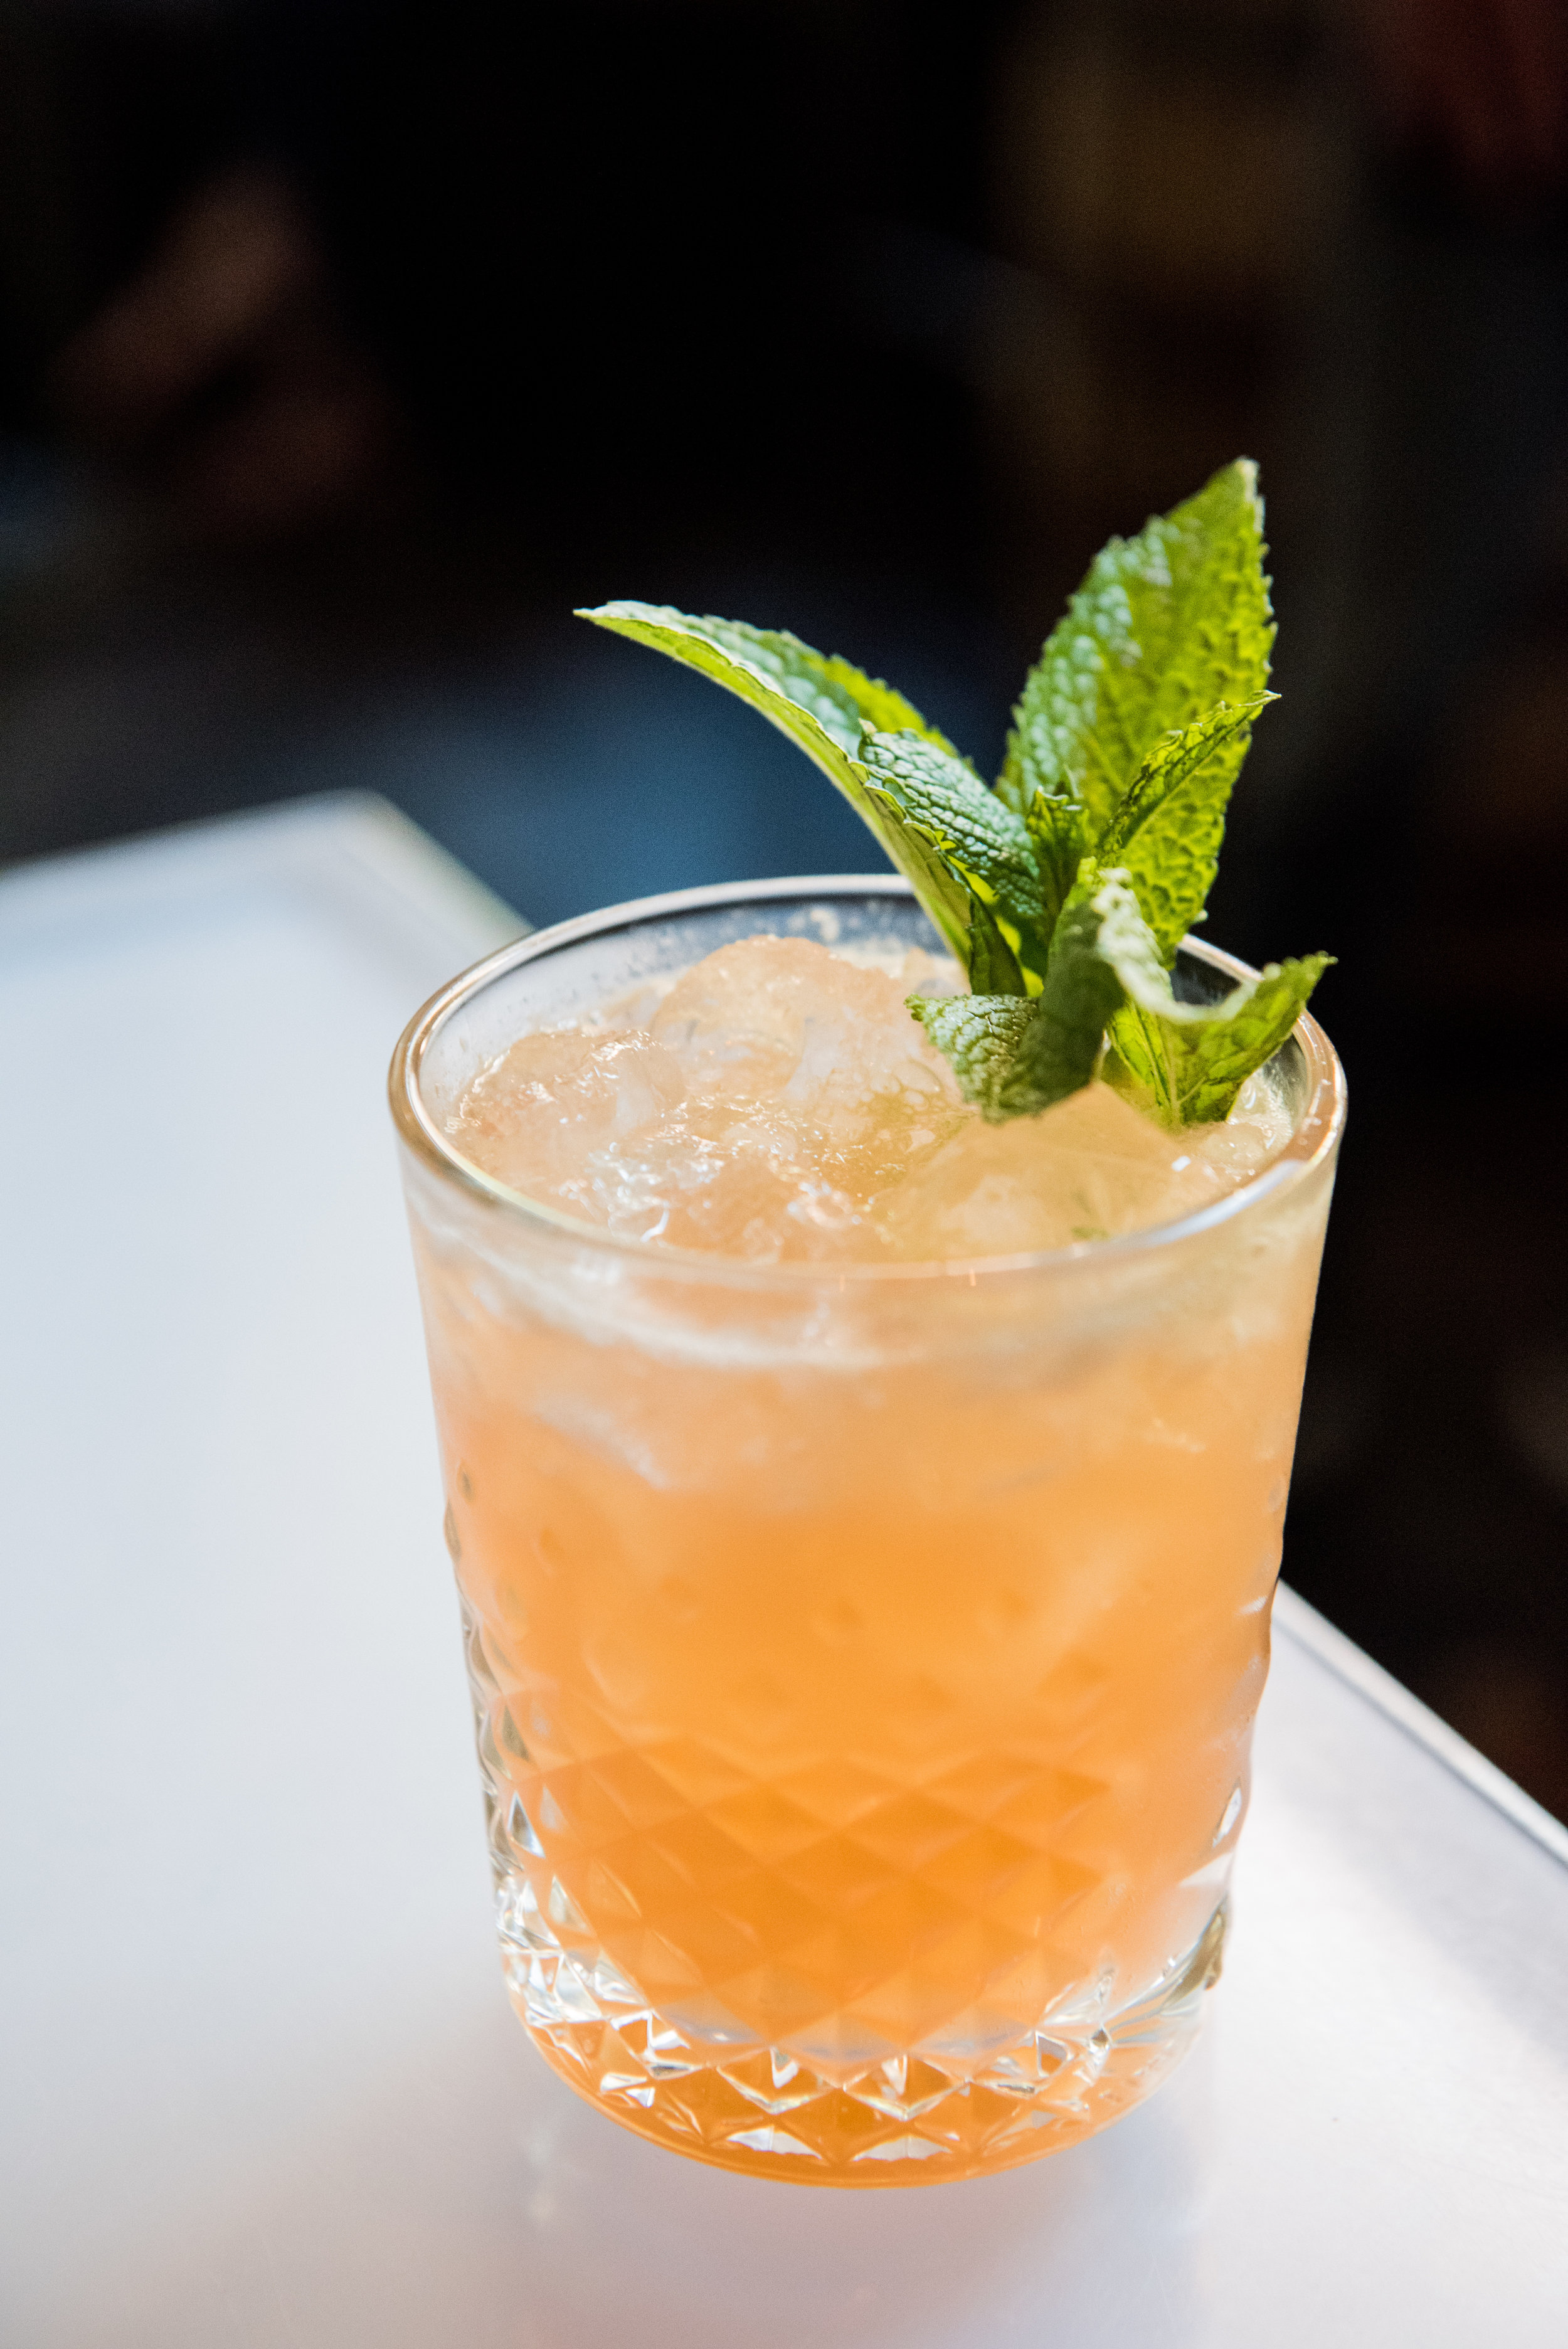 Jesse's Girl - CH London Dry Gin, Strawberry, Mint, Celery(Refreshing with a savory finish)